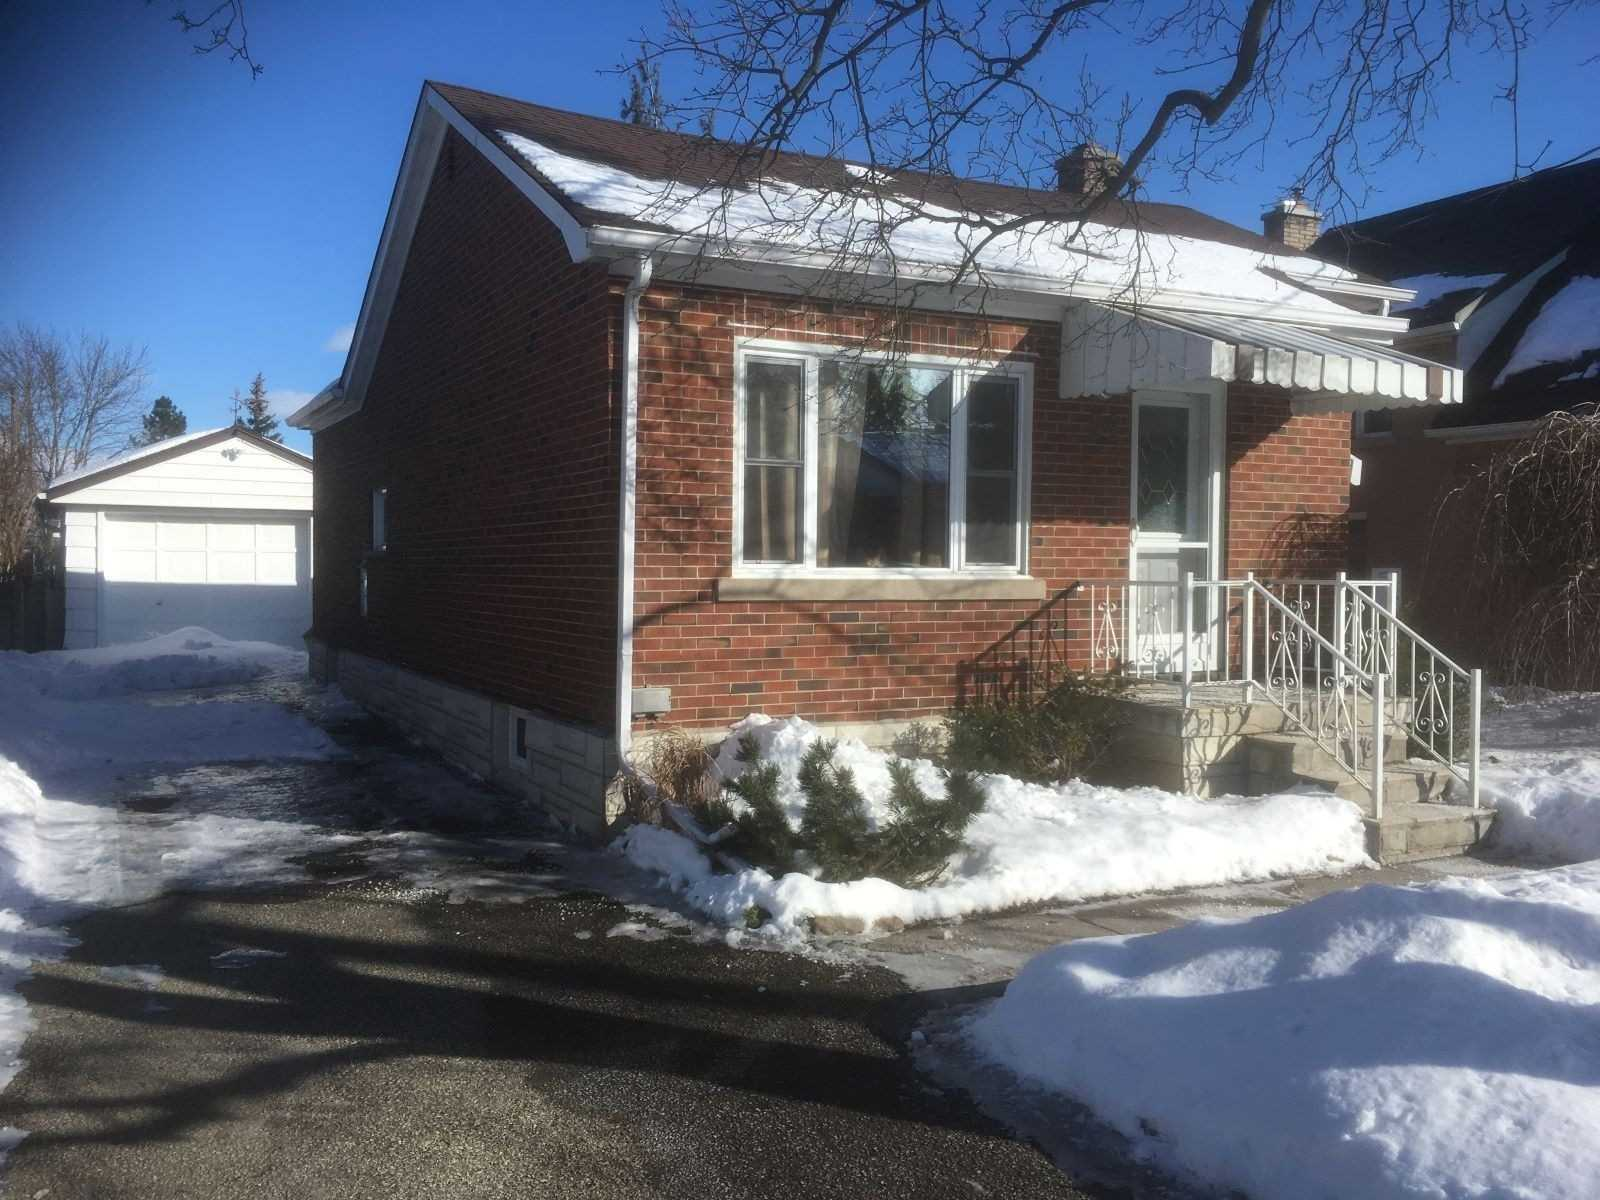 pictures of house for sale MLS: X4696530 located at 54 Boehmer St, Kitchener N2H4N3